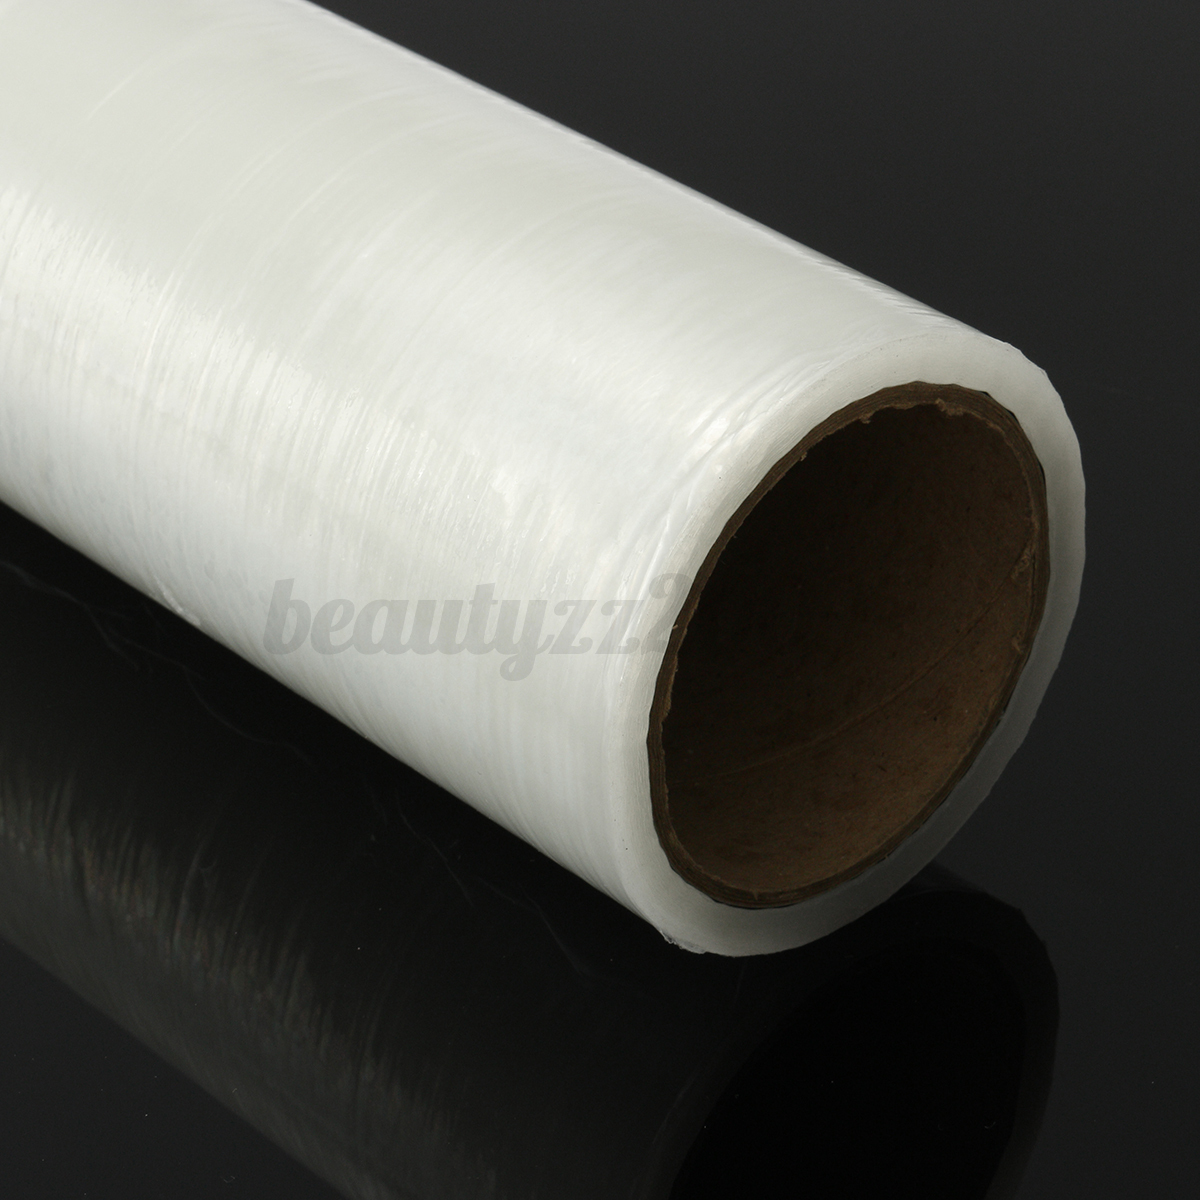 20 50m diy decorating carpet protector protection film floor roll self sheet ebay - Decorating carpet protector ...